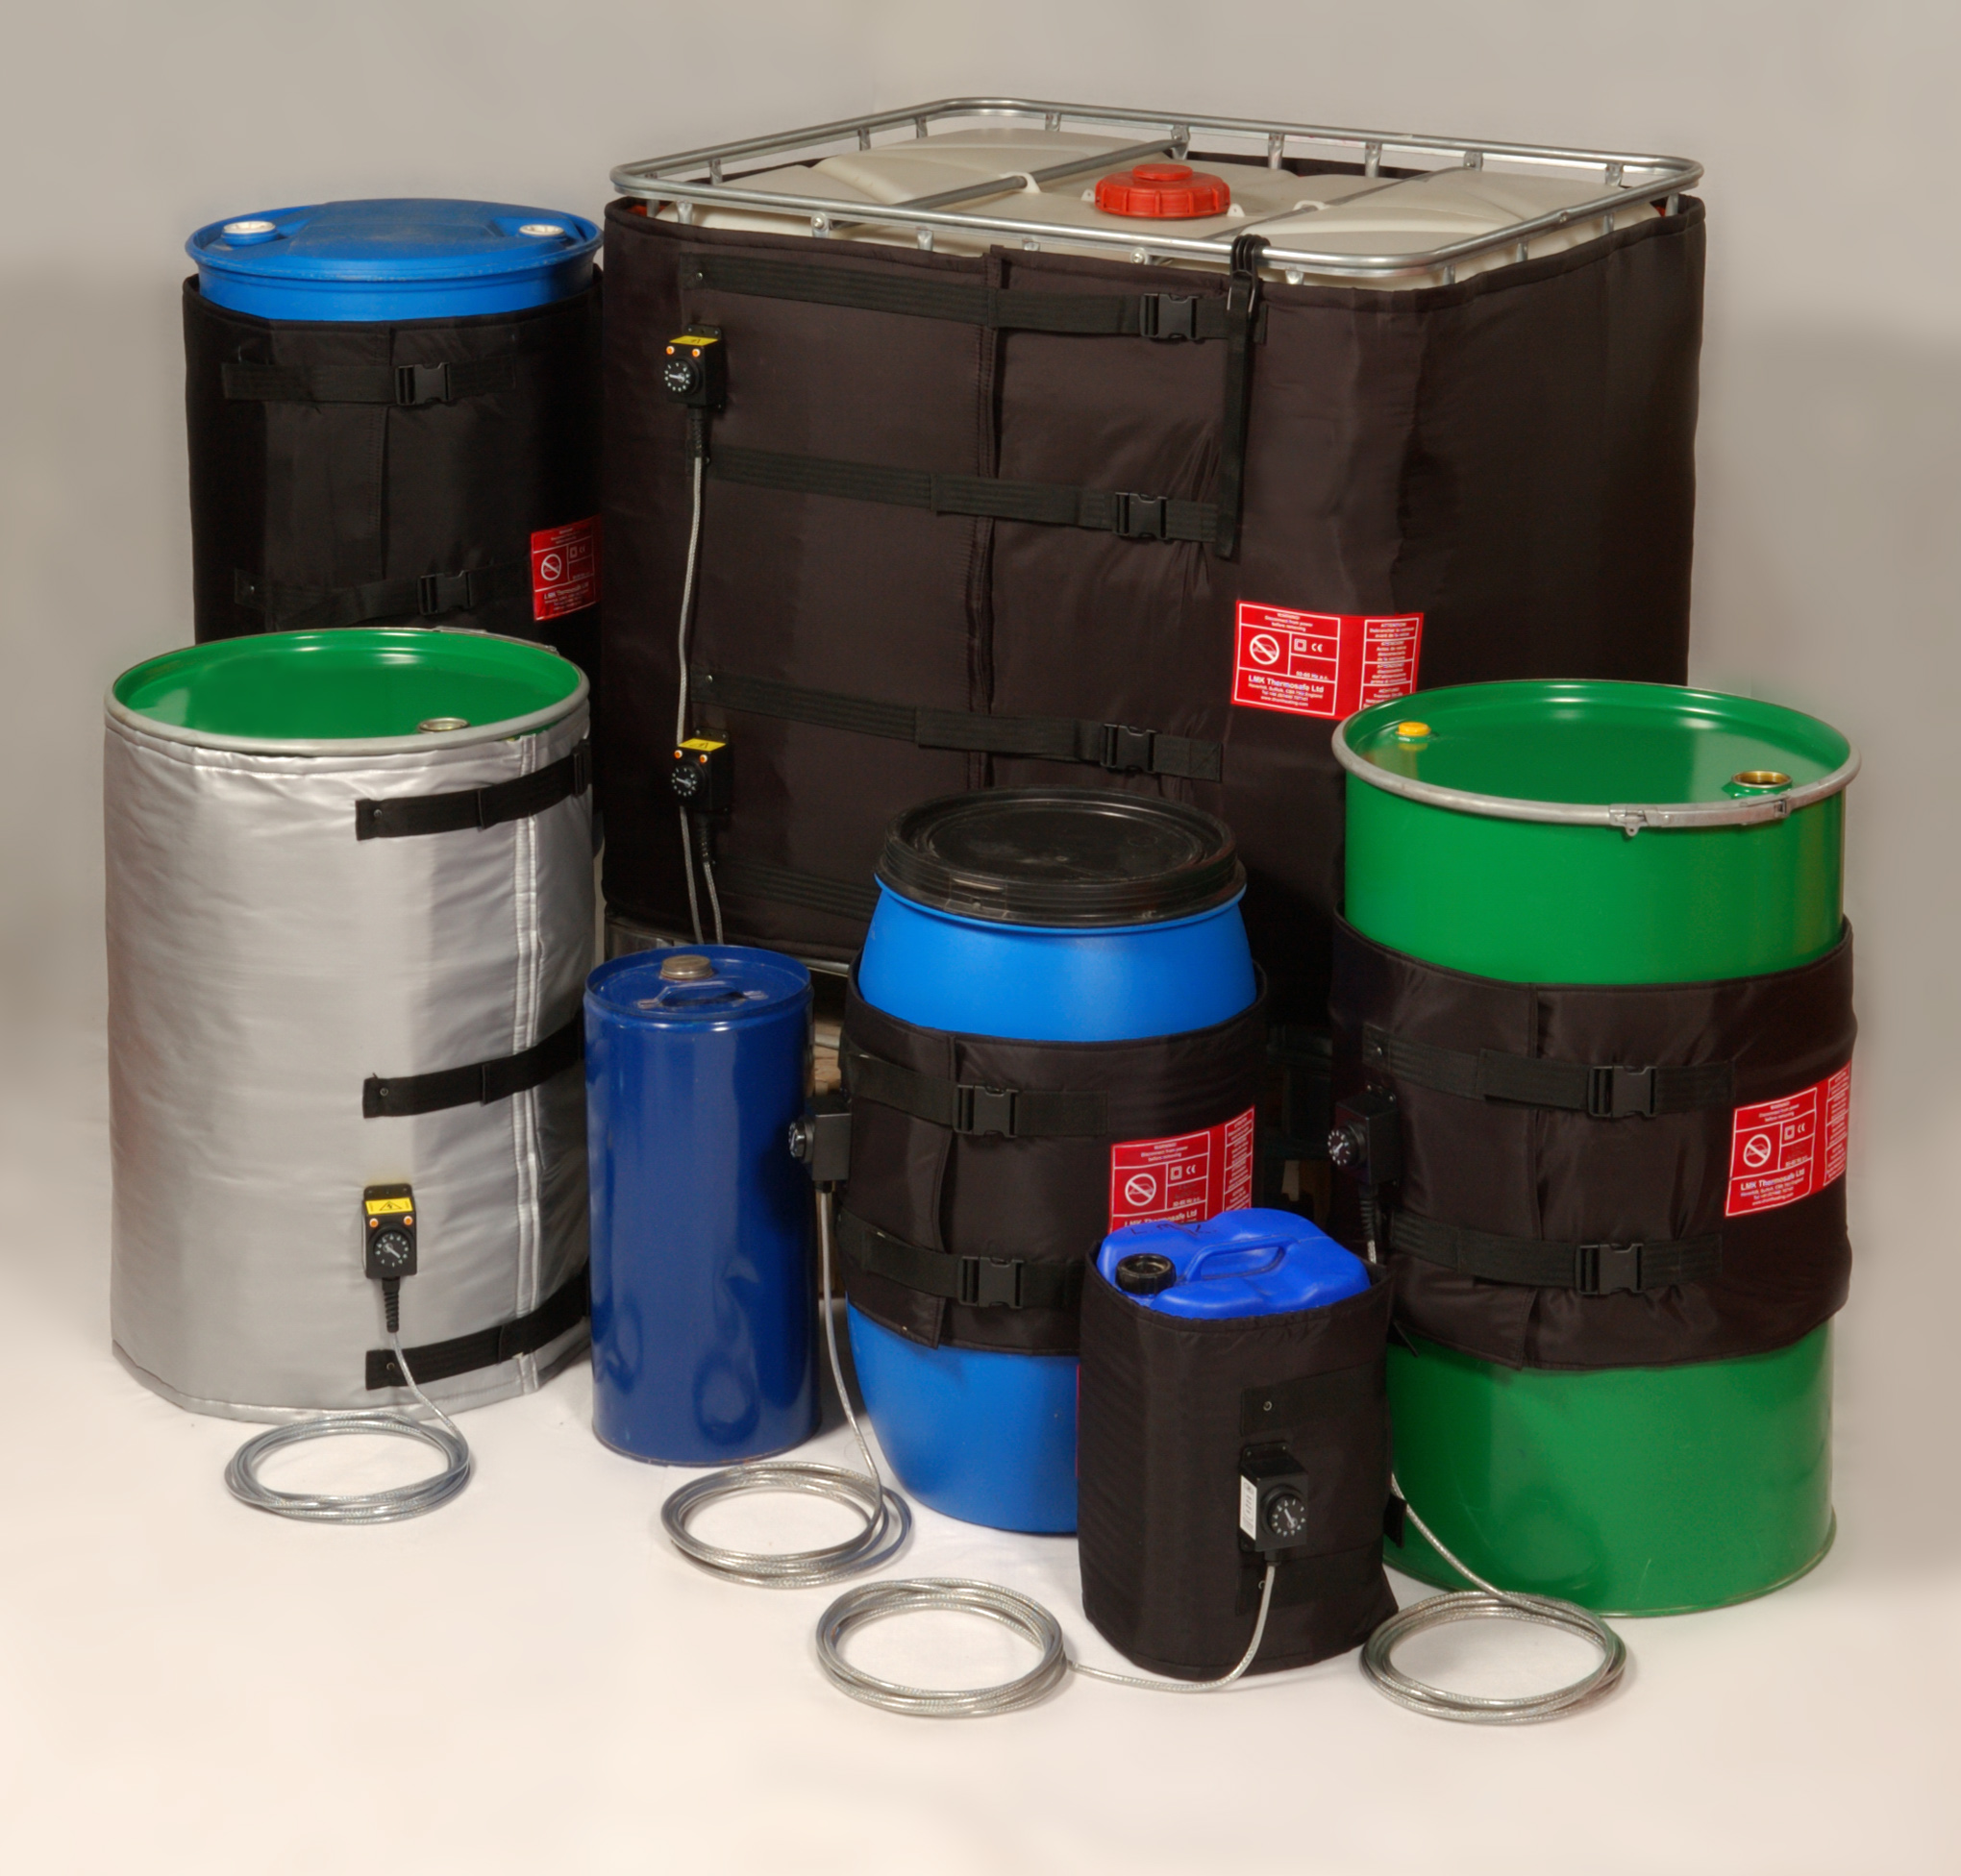 Insulated Flexible Heating Jackets for Drums and Containers